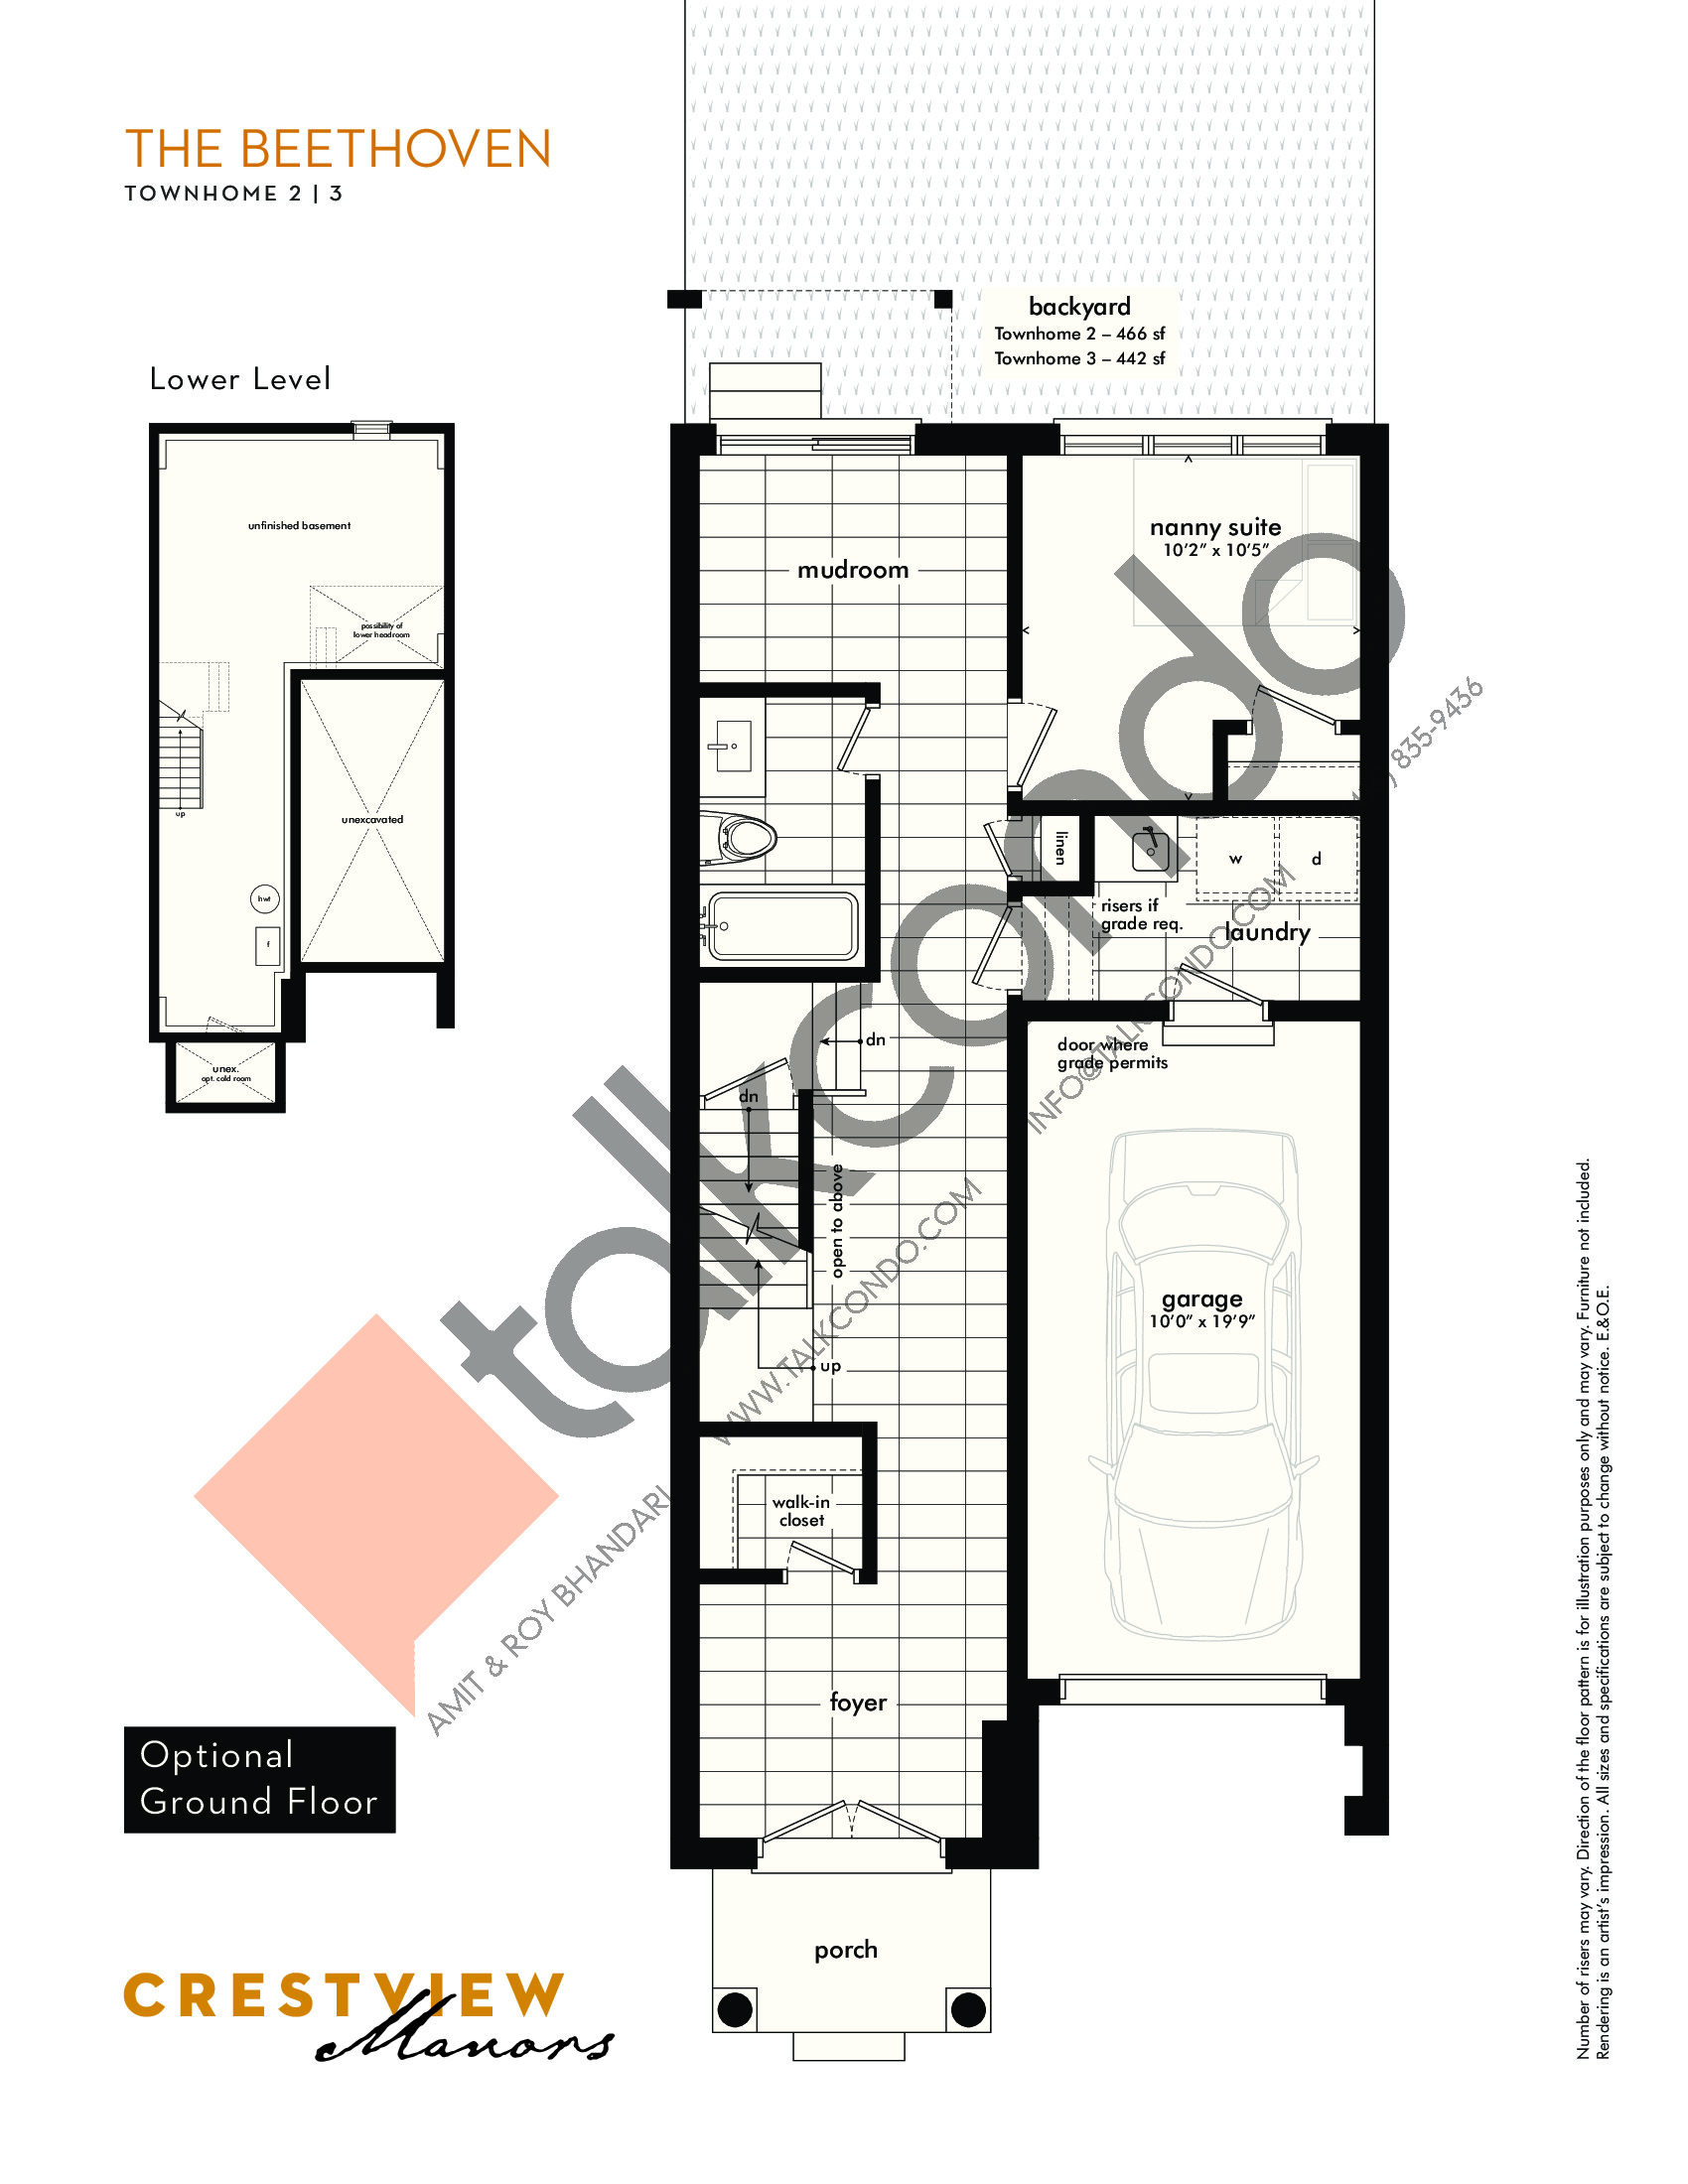 The Beethoven - Optional Ground Floor Floor Plan at Crestview Manors - 2362 sq.ft